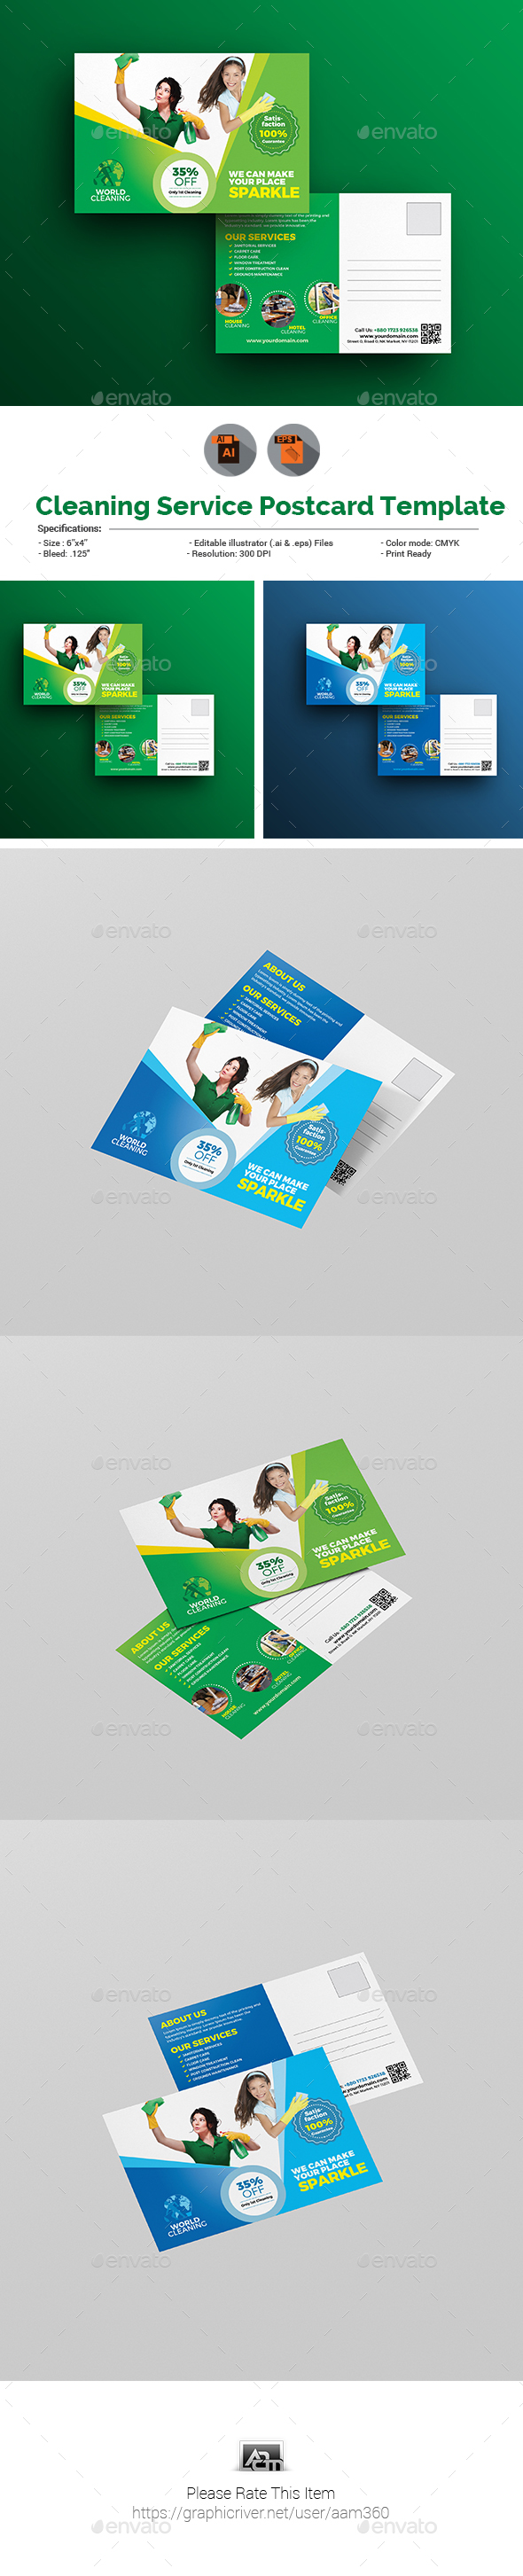 Cleaning Services Postcard Template - Cards & Invites Print Templates